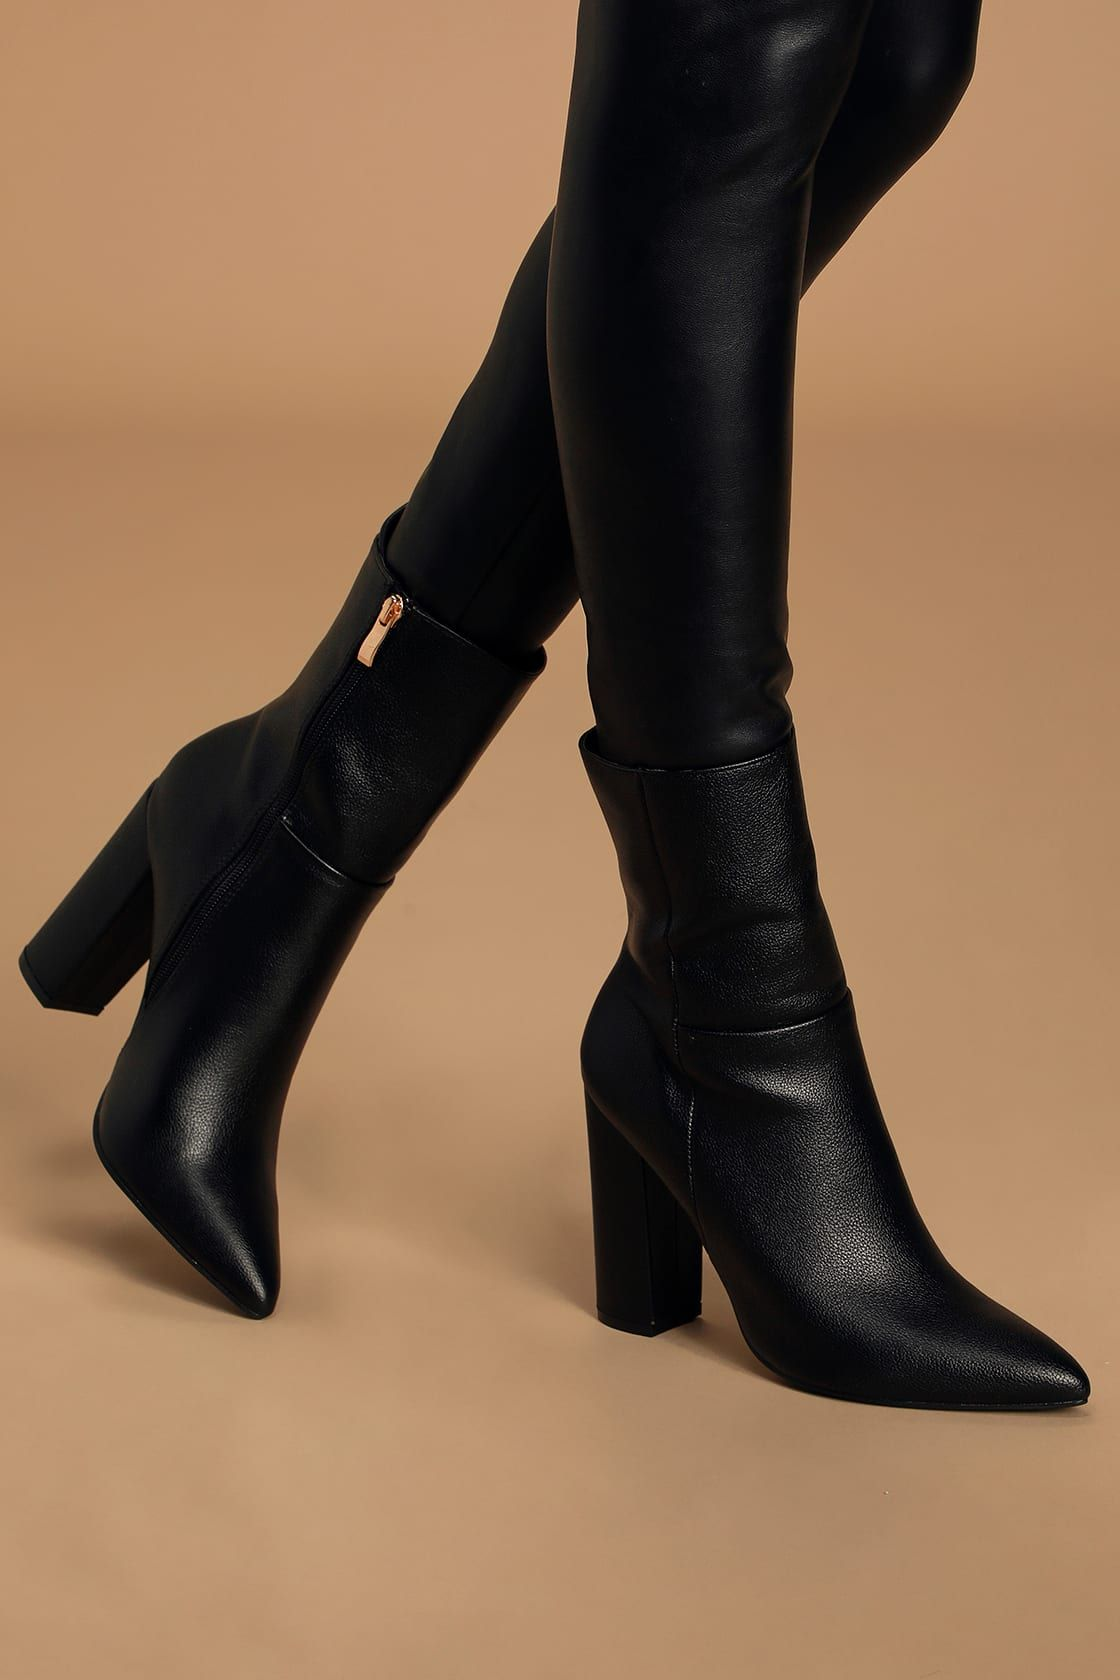 Calf boots outfit